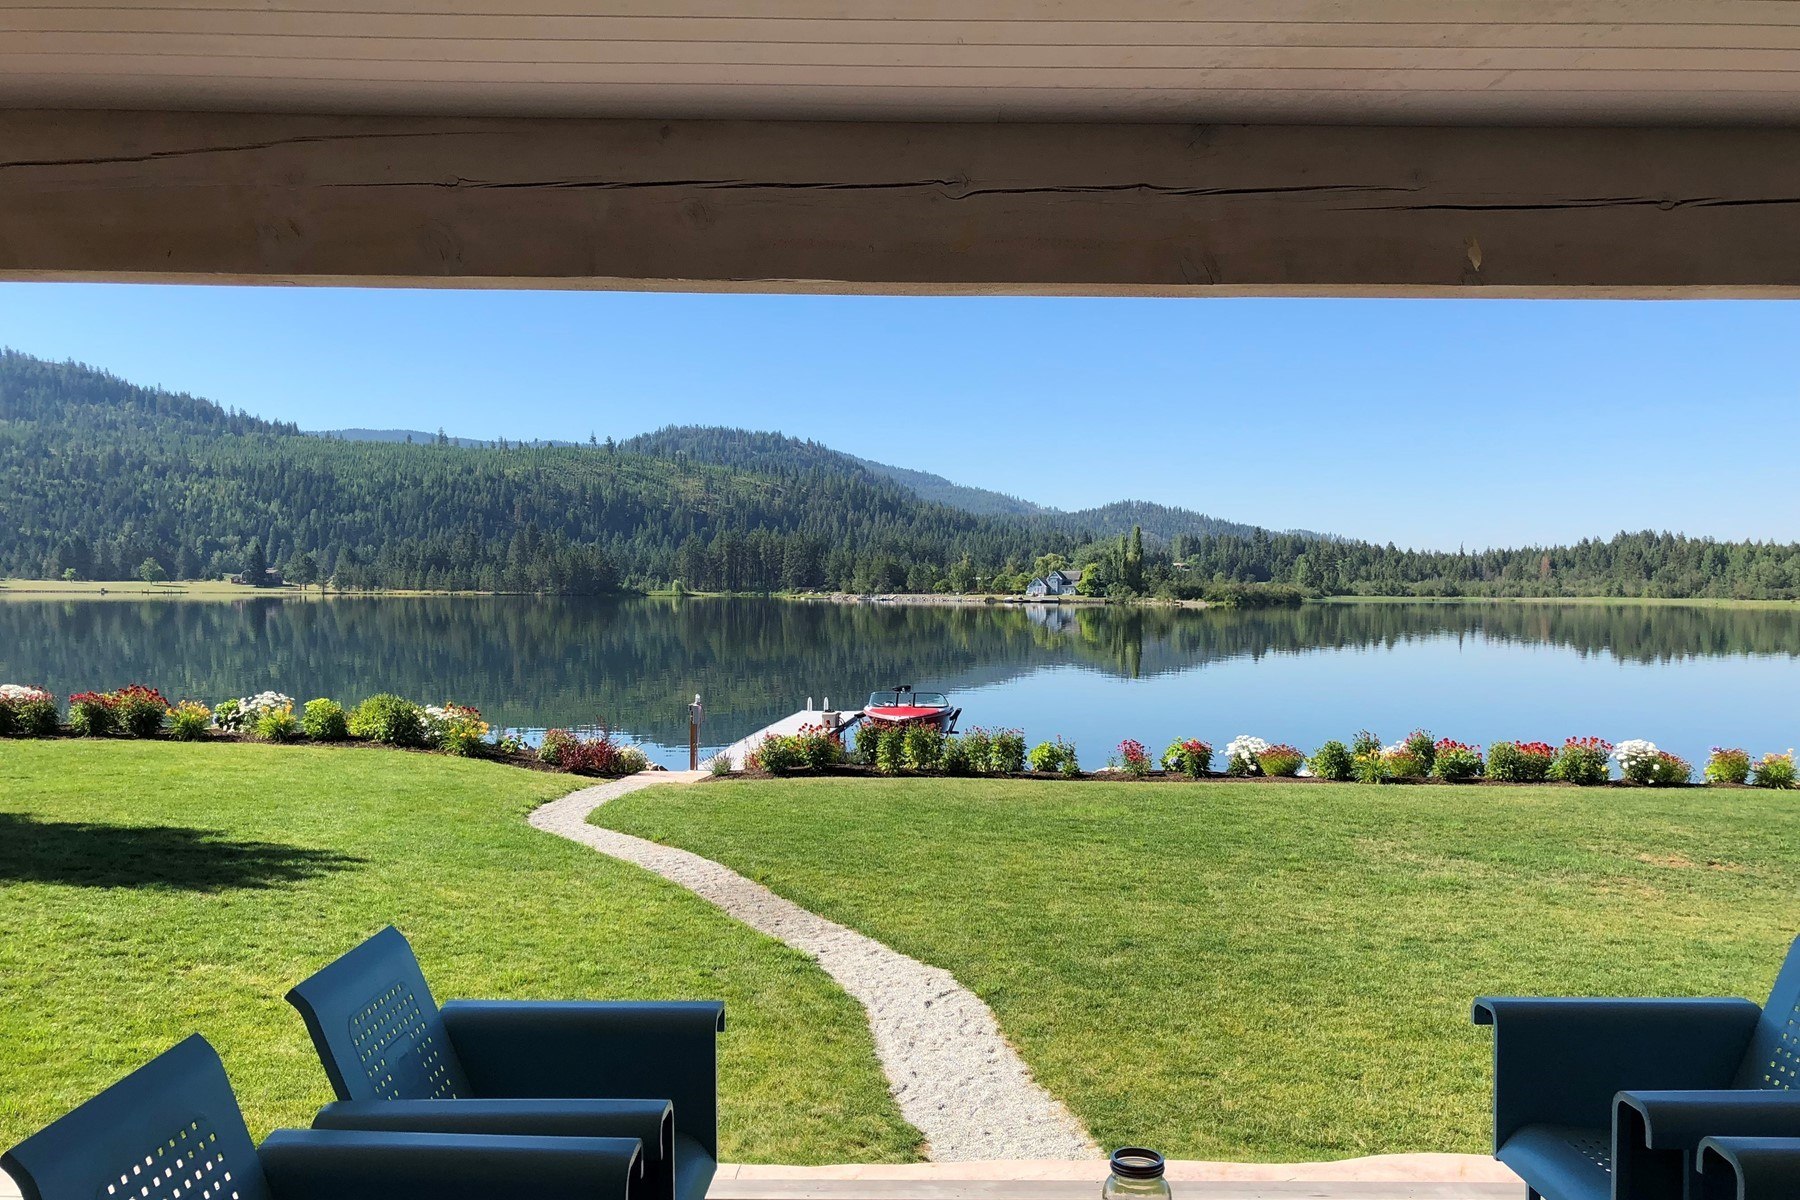 Single Family Homes for Active at Riverfront Craftsman Home 645 River Run Drive Priest River, Idaho 83856 United States